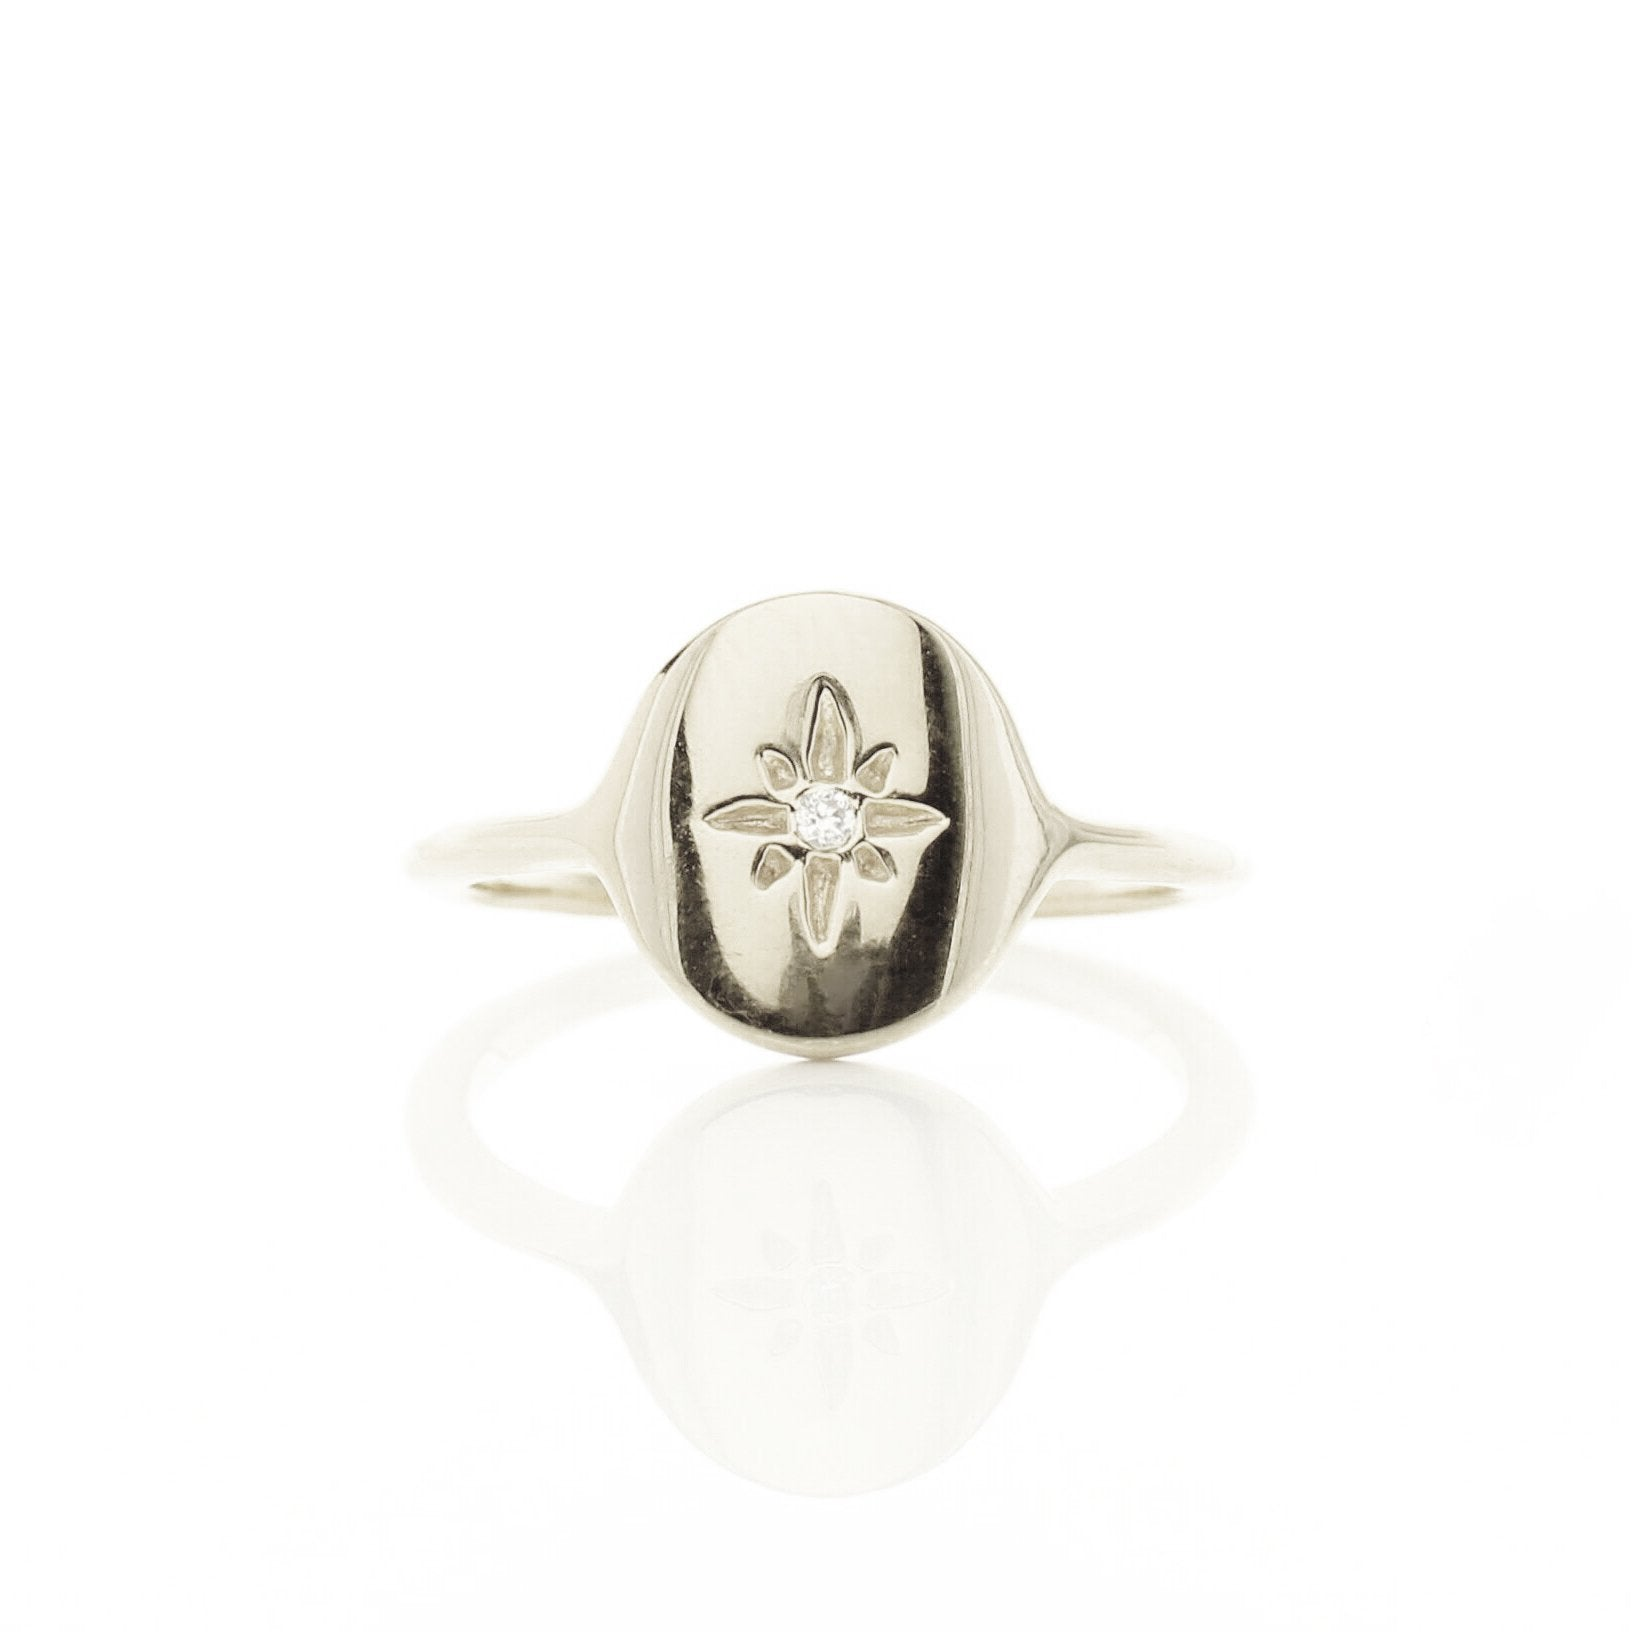 MINI IMAGINE SIGNET RING - CUBIC ZIRCONIA & SILVER - SO PRETTY CARA COTTER